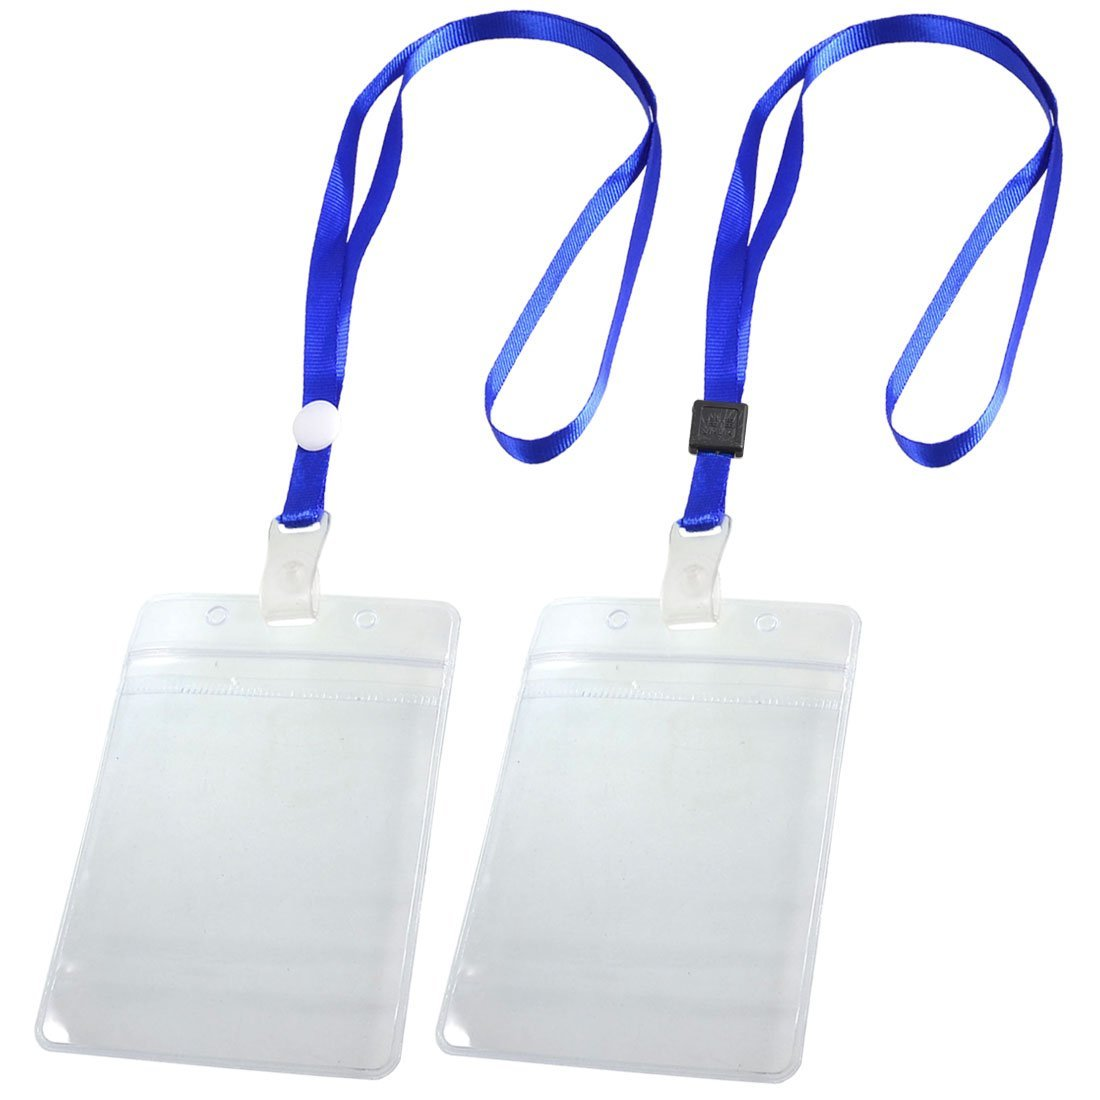 2 Pcs ID Card Badge Holder Adjustable Neck Strap Lanyard Blue Clear